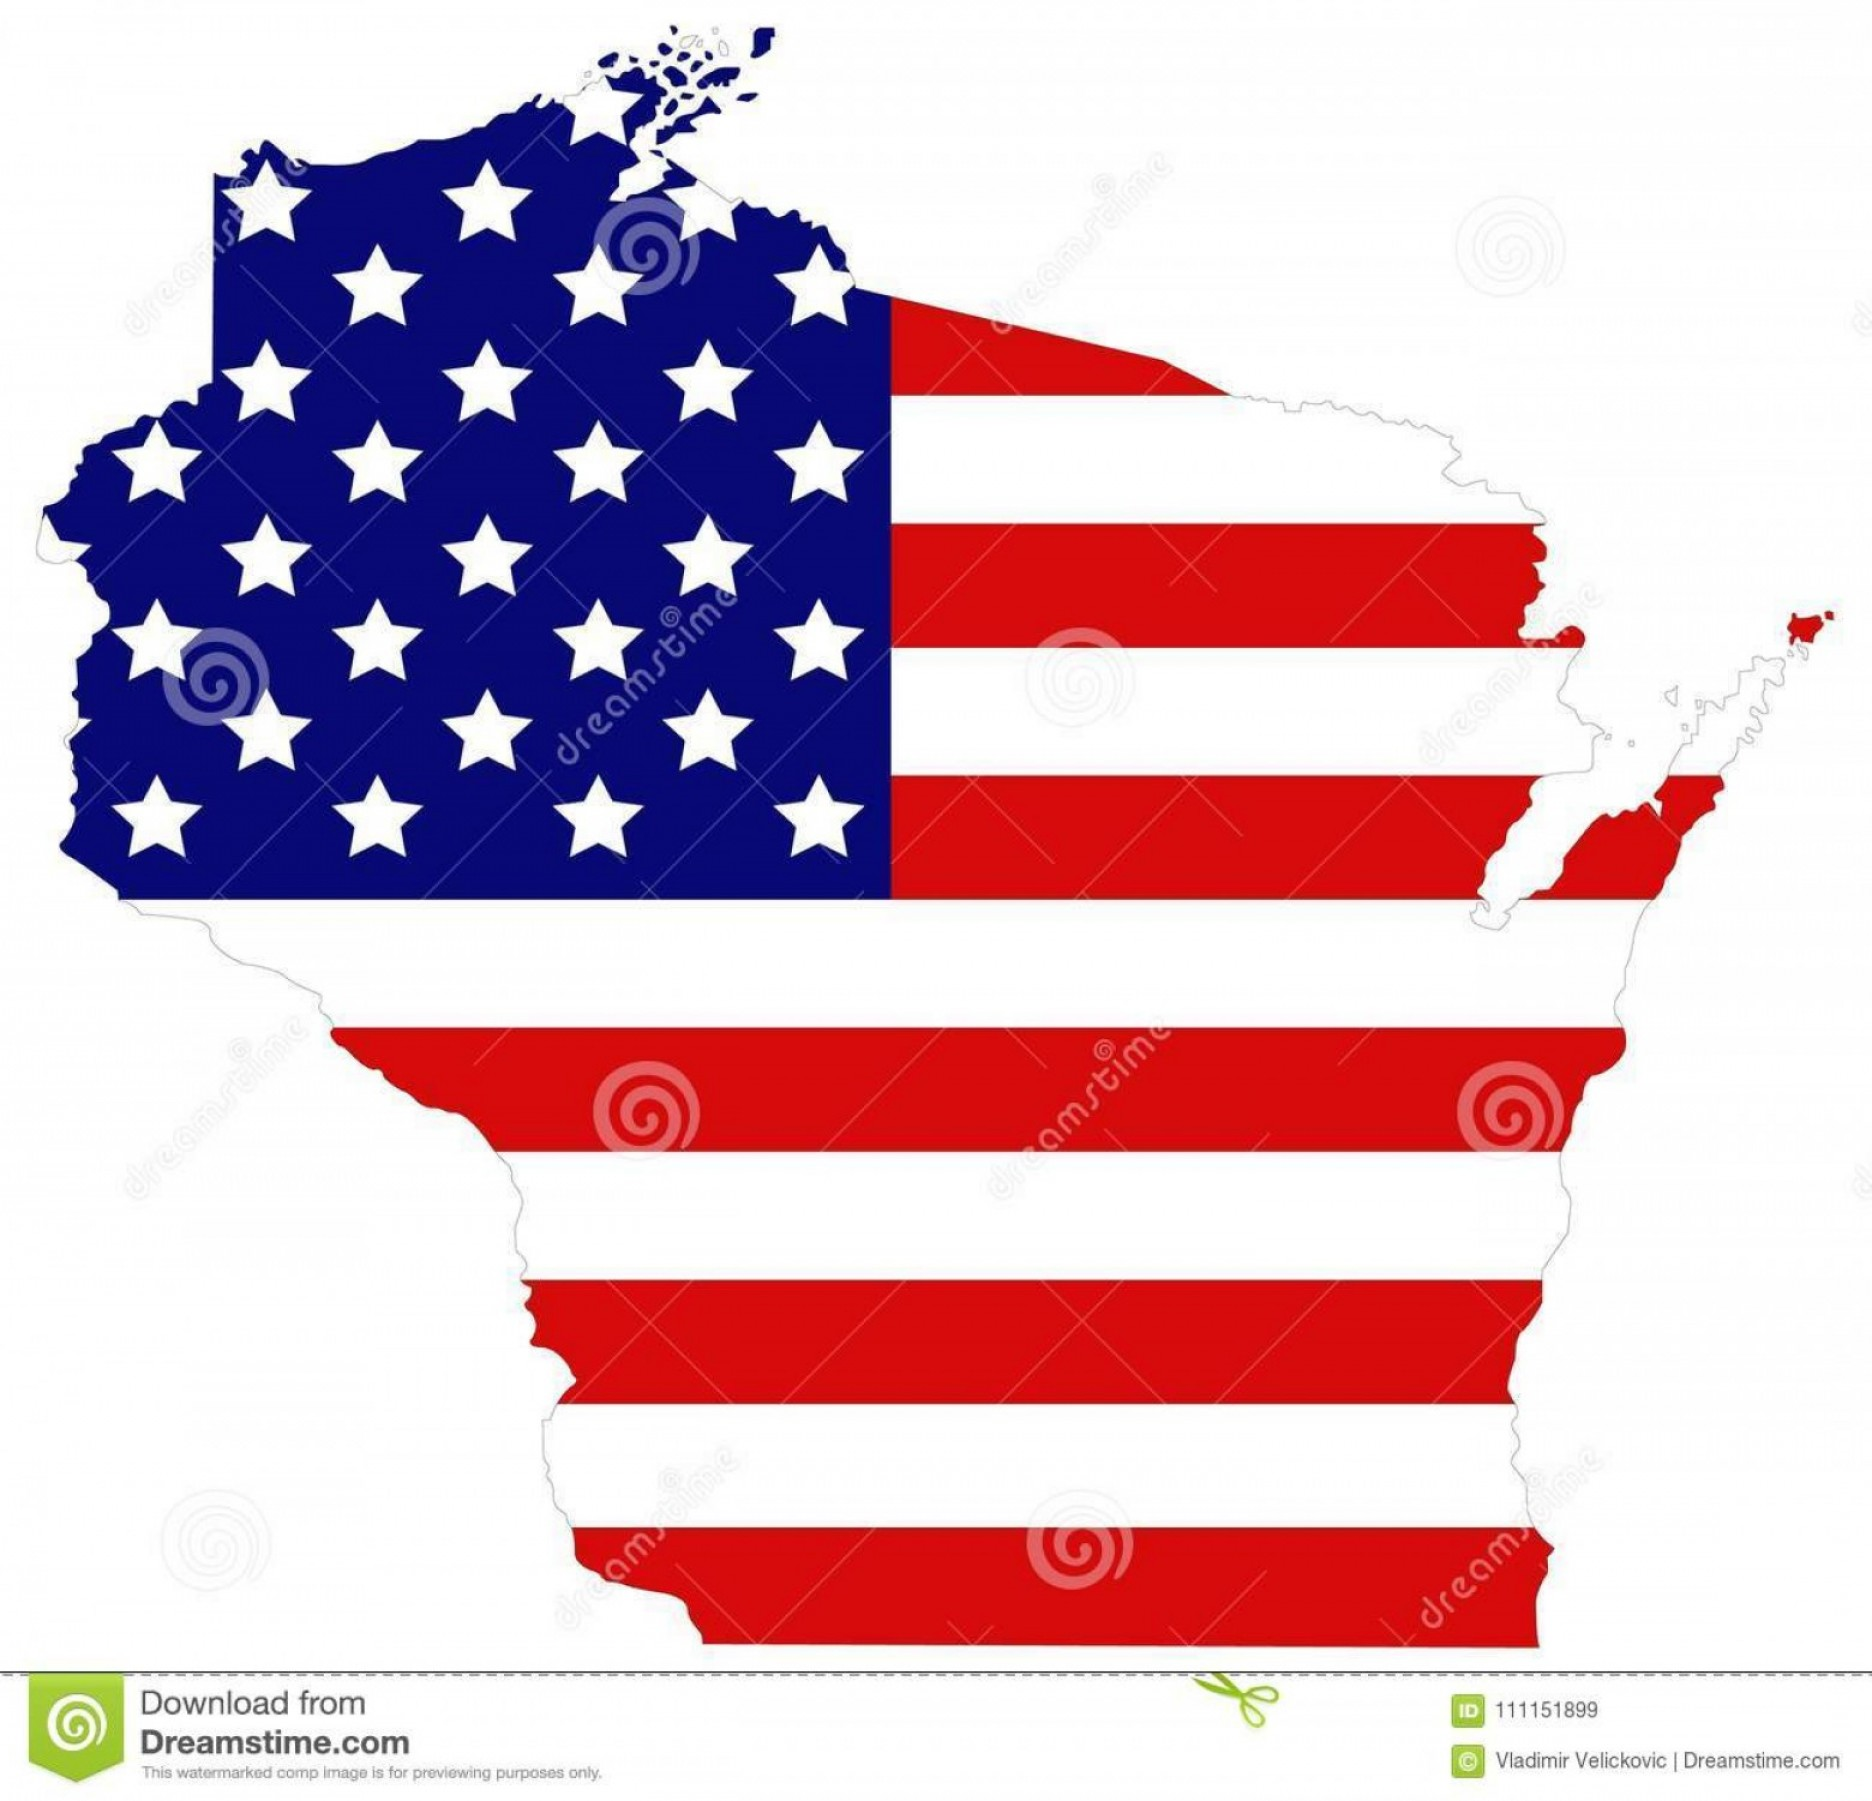 WI County Map Vector: Wisconsin Map Usa Flag State North Central United States Vector File Wisconsin Map Usa Flag State North Image